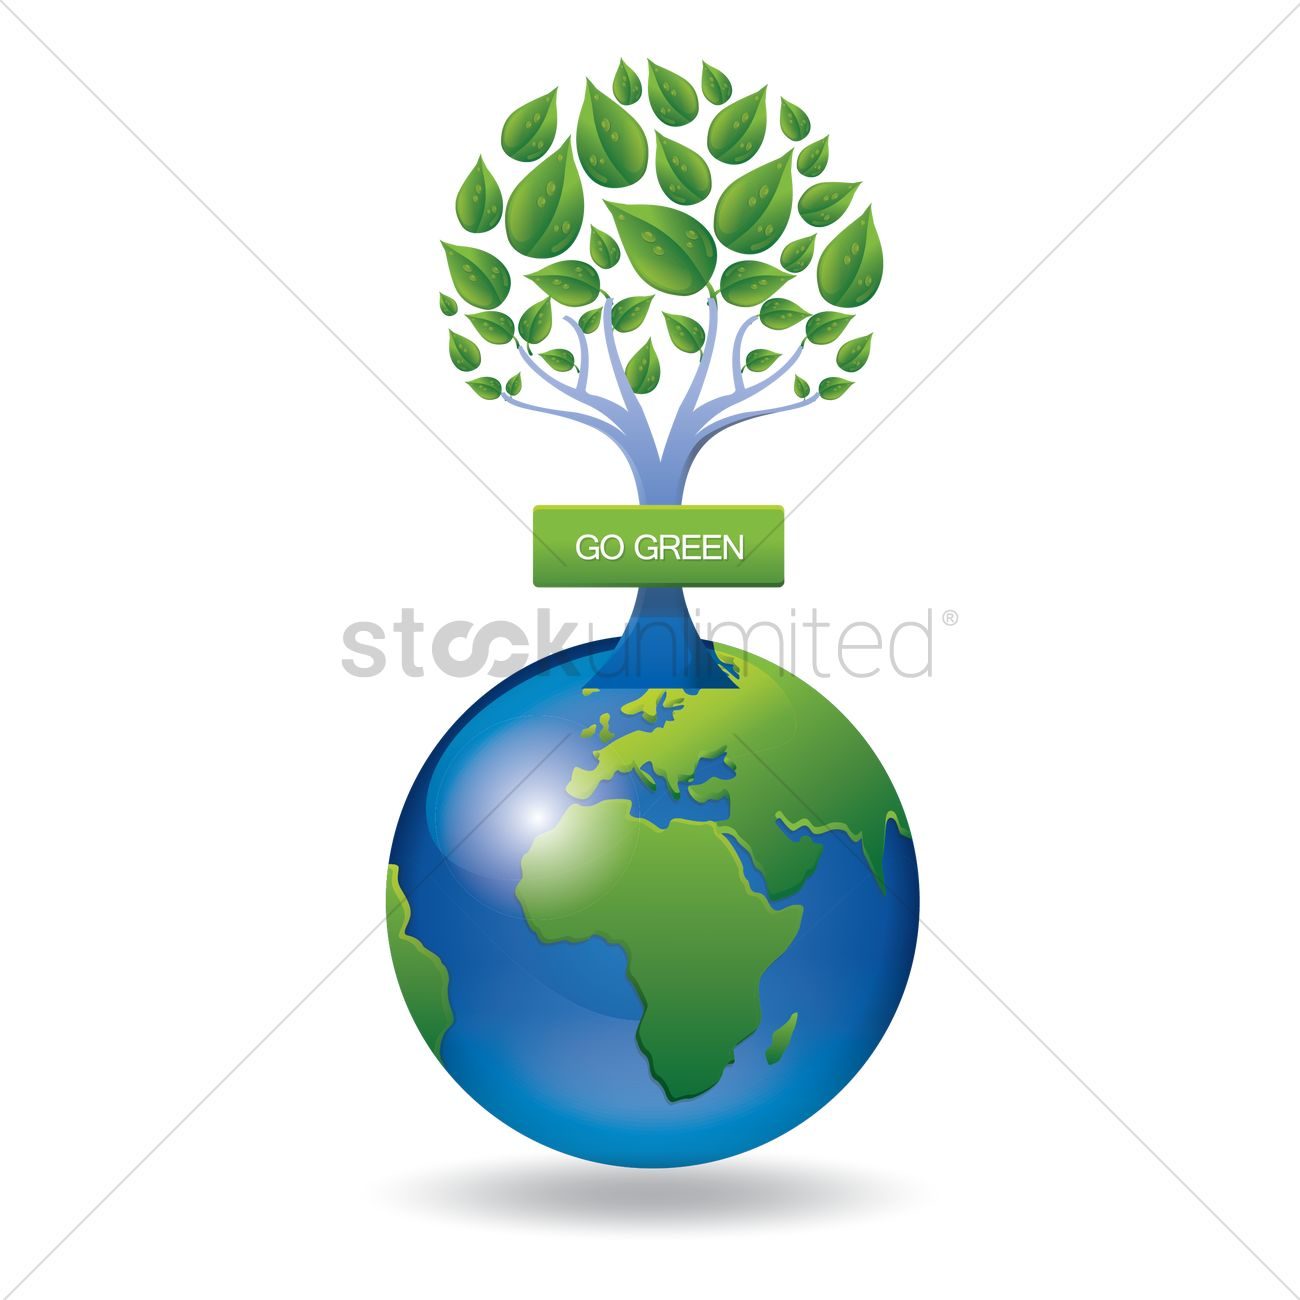 1300x1300 Green Globe With Go Green Tree Vector Image